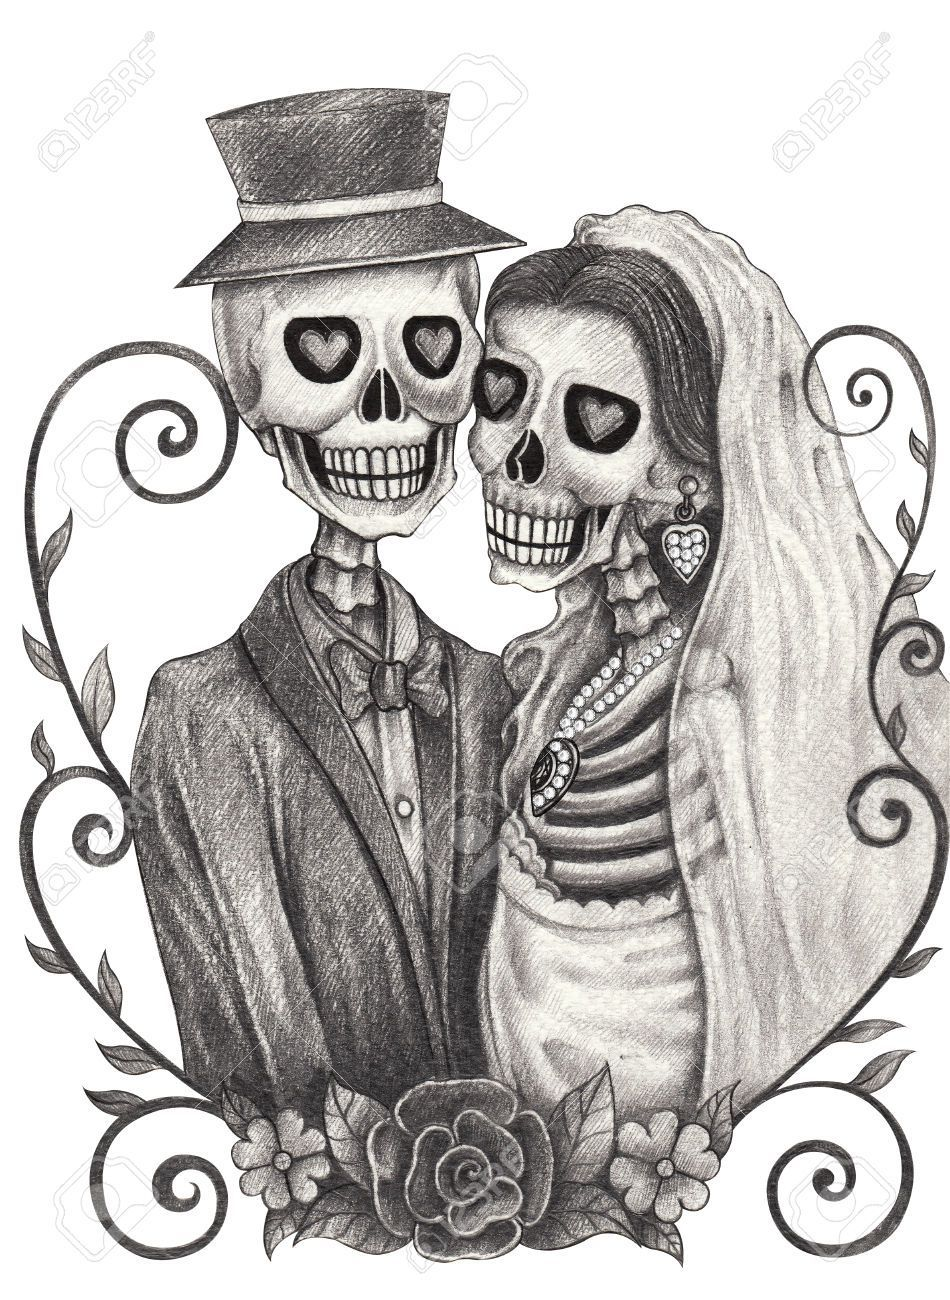 Skeleton bride and groom clipart 8 » Clipart Portal.